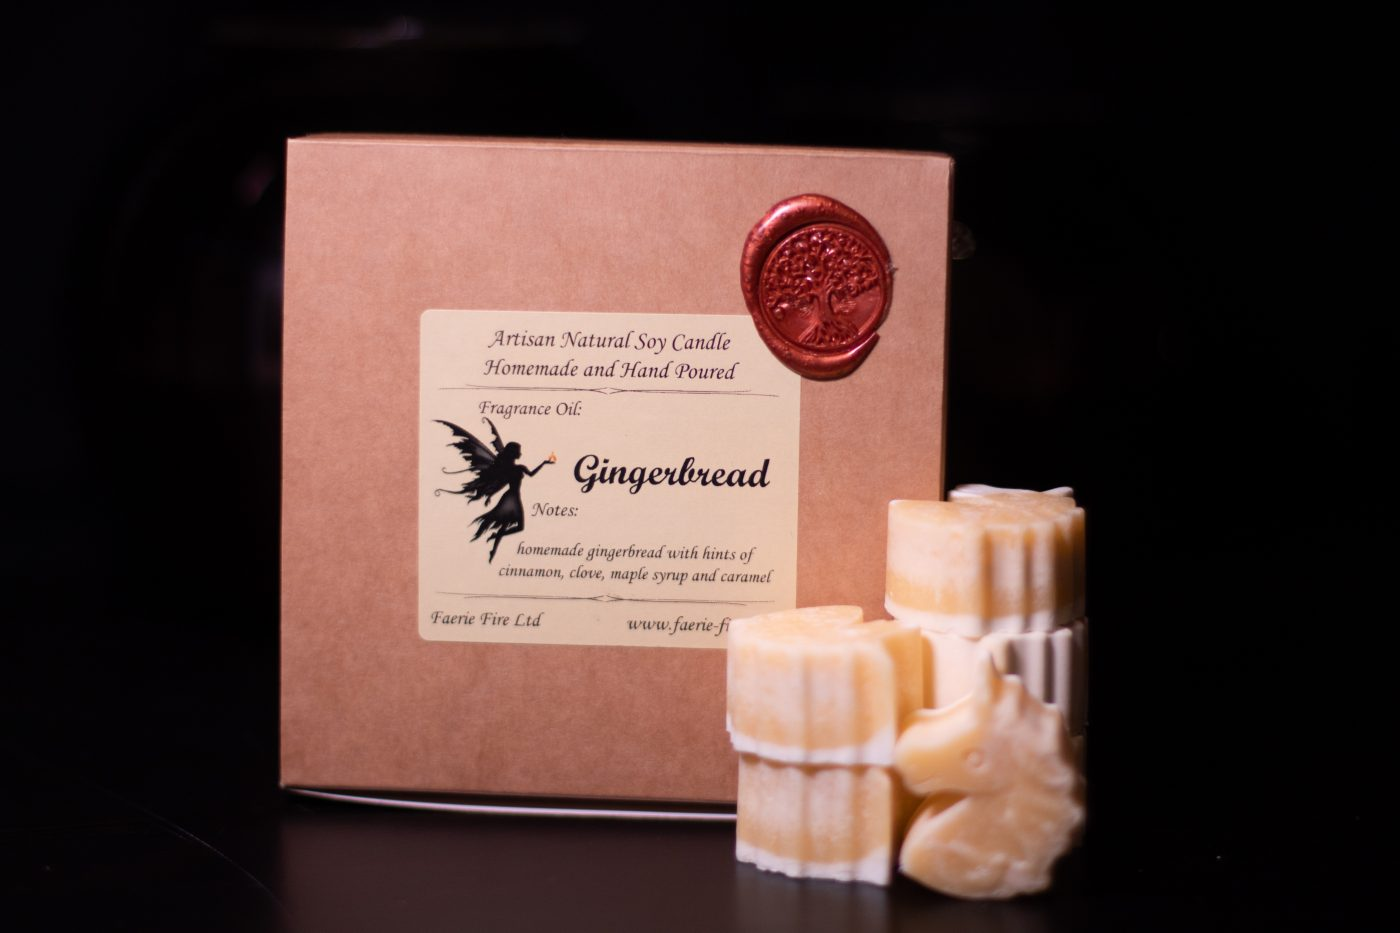 Gingerbread Soy Wax Melts scaled